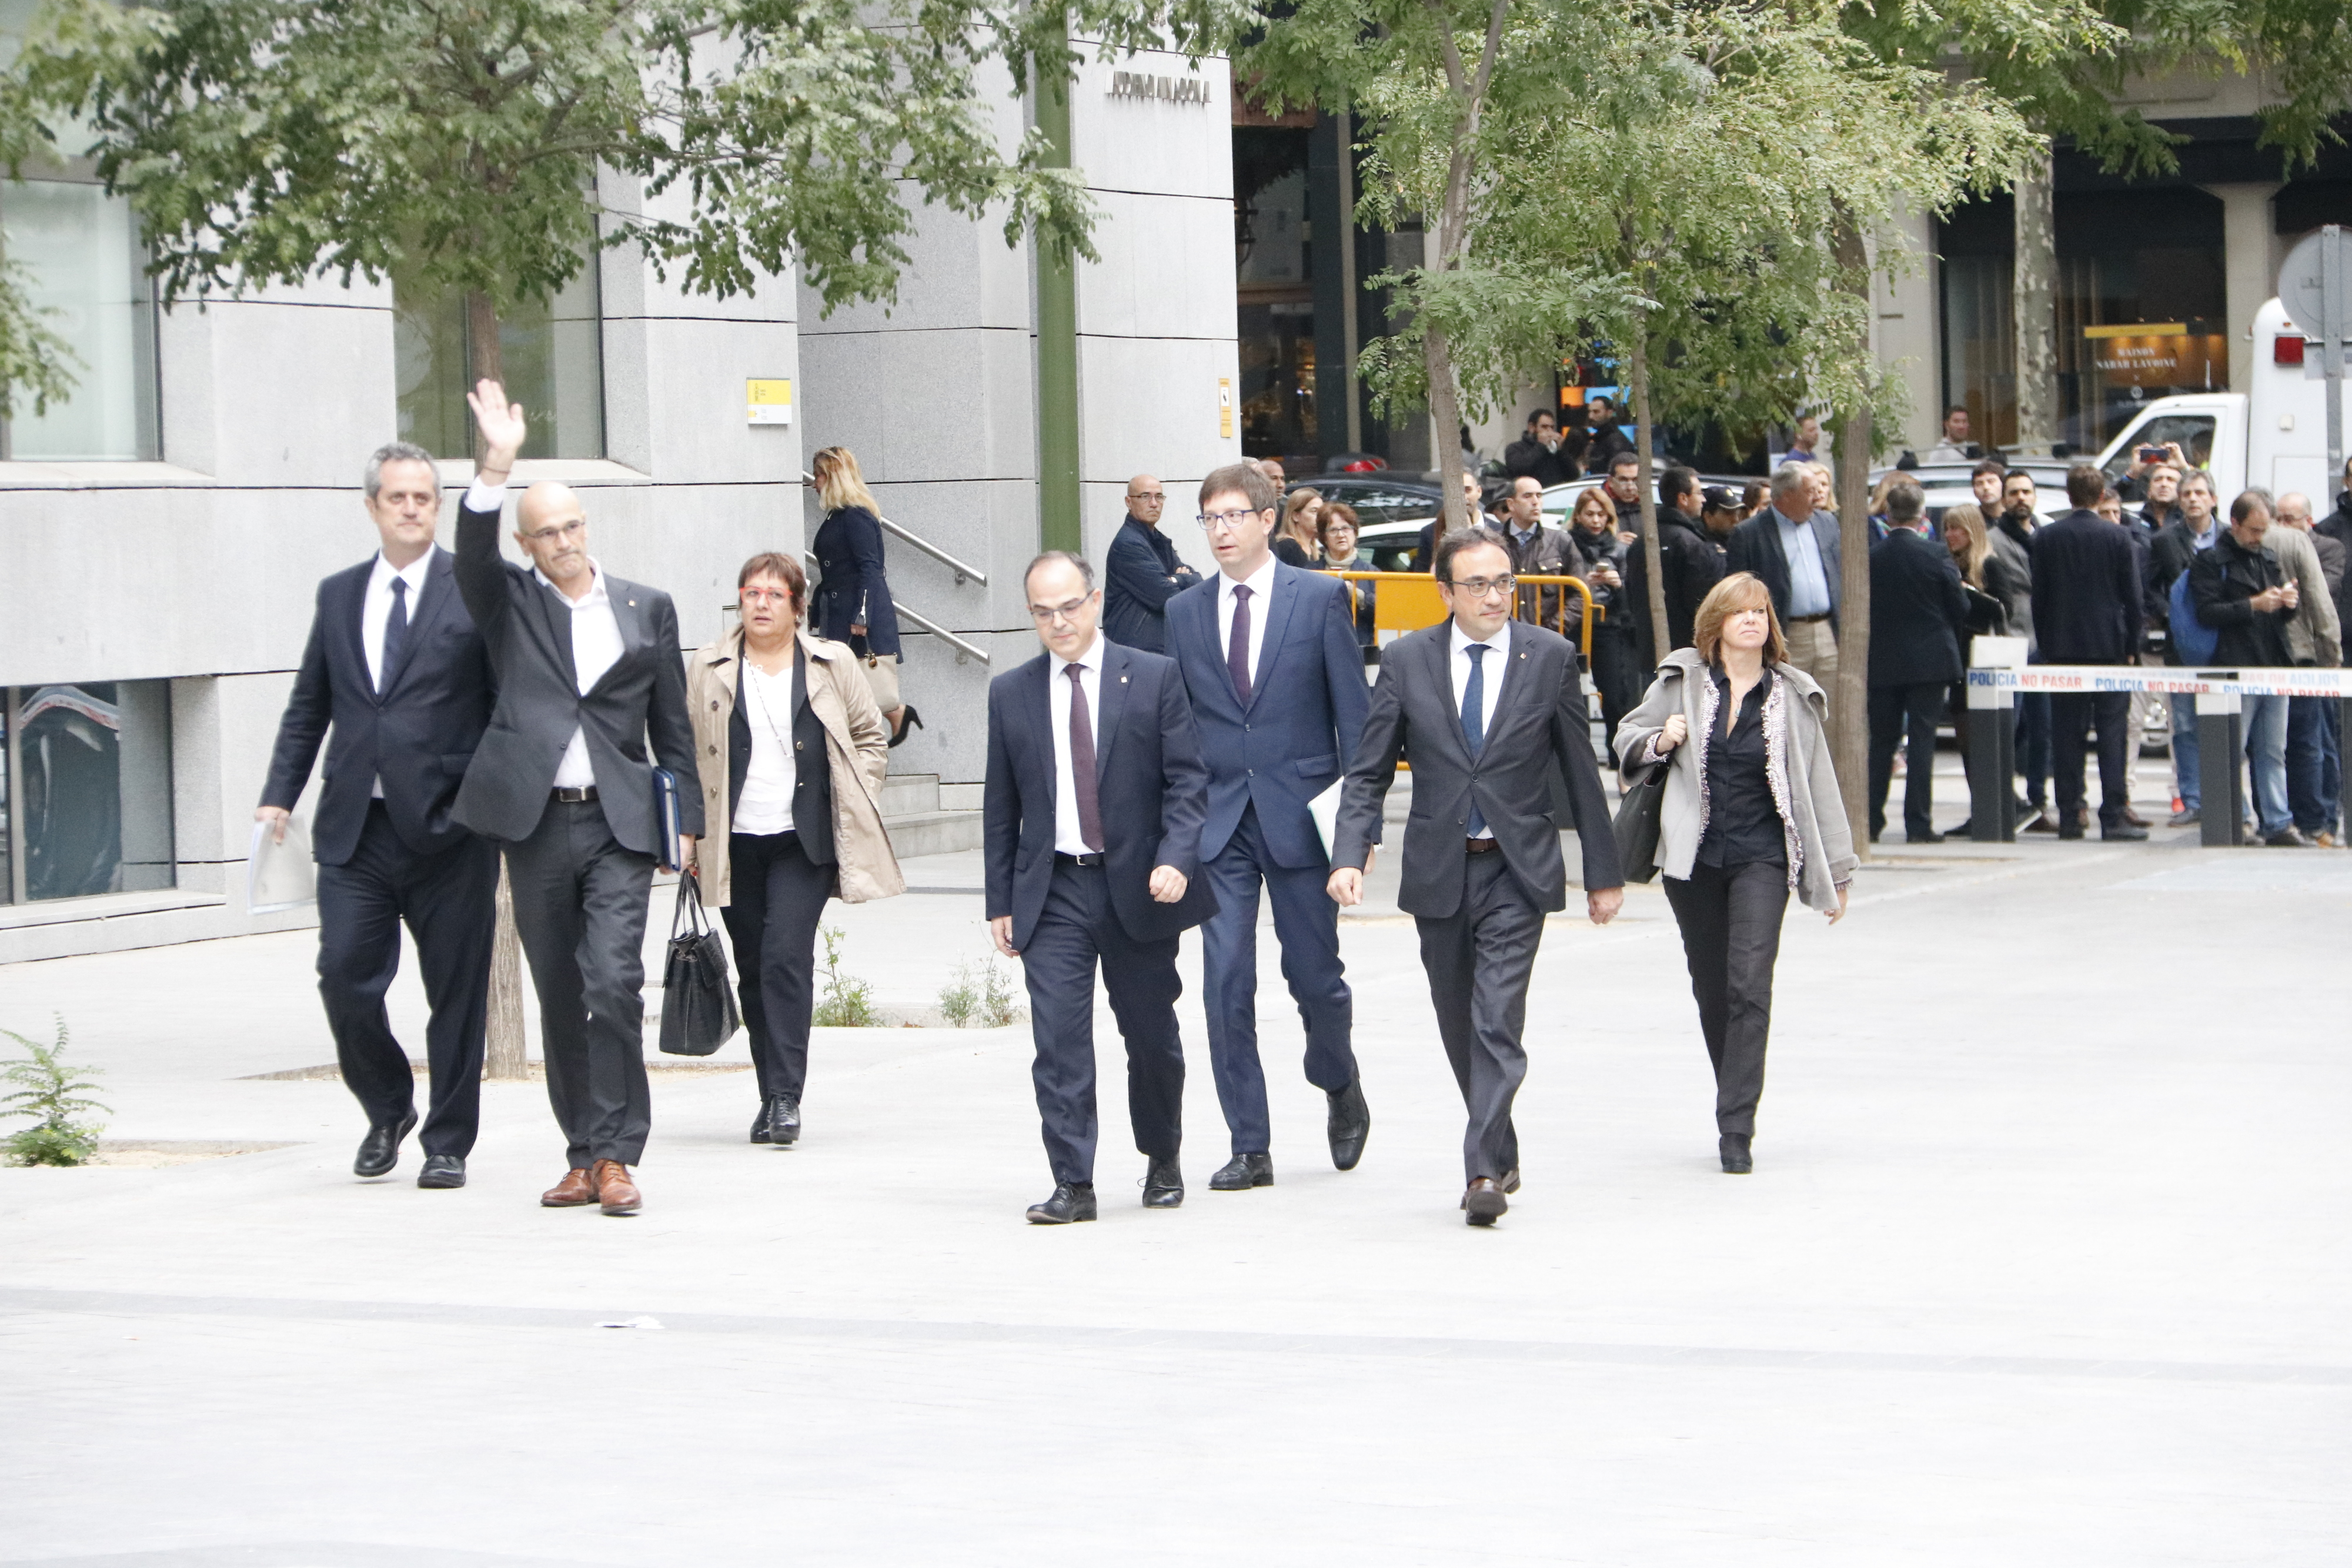 Catalan ministers arrive in Spain's National Court, charged for declaring independence (by Rafa Garrido)